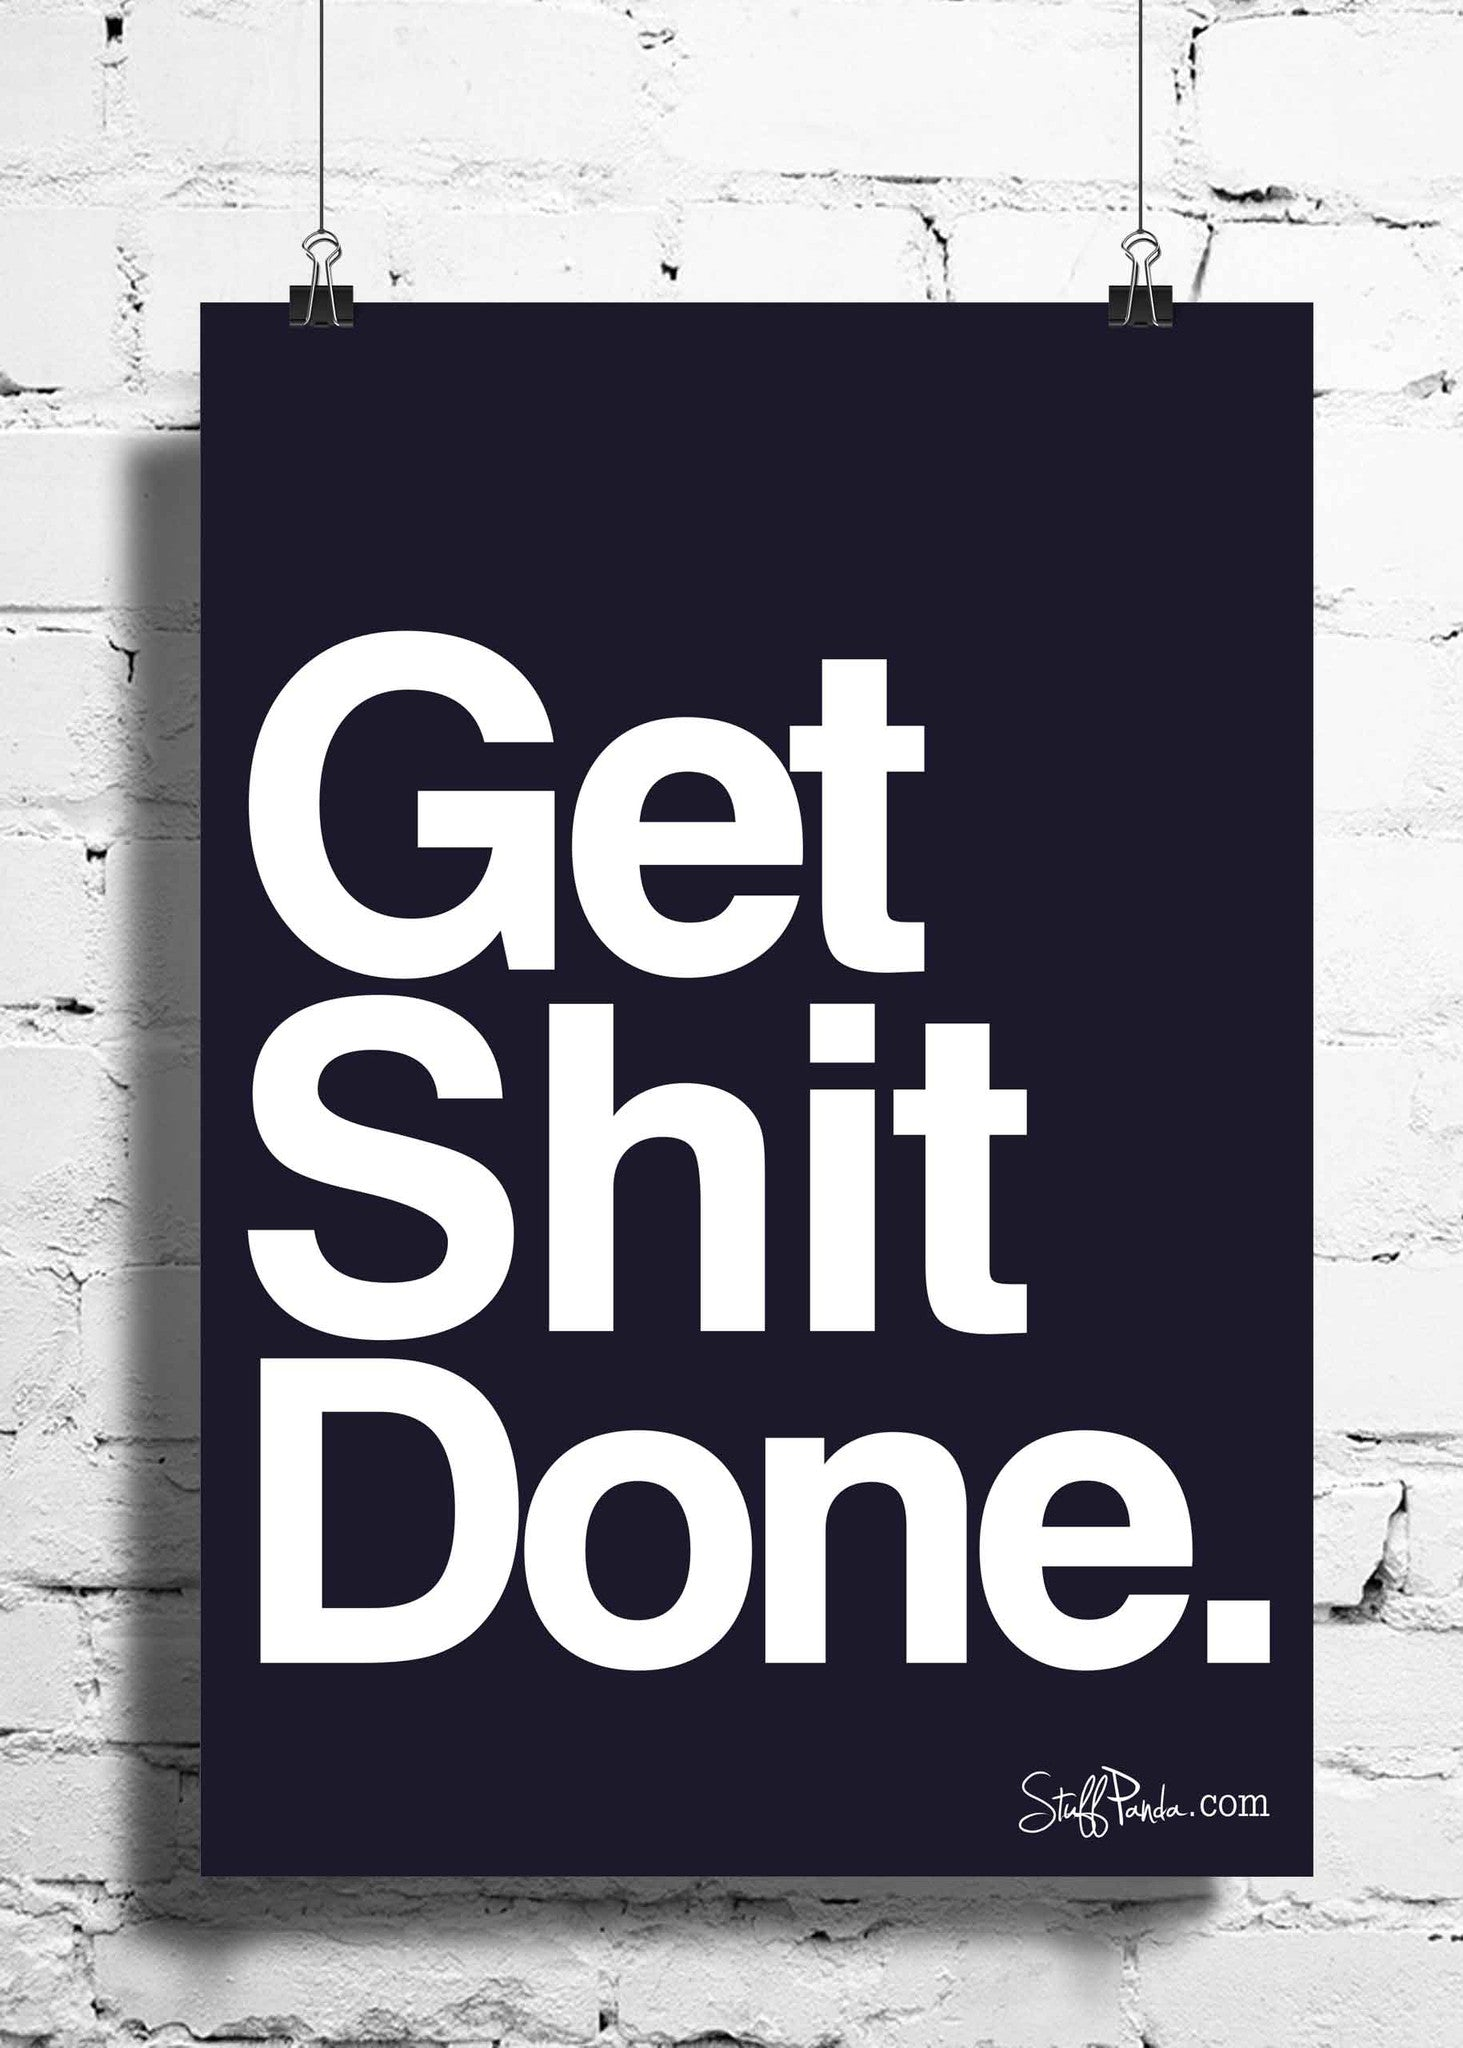 Cool Abstract Motivation Get Shit done wall posters, art prints, stickers decals - stuffpanda - 1